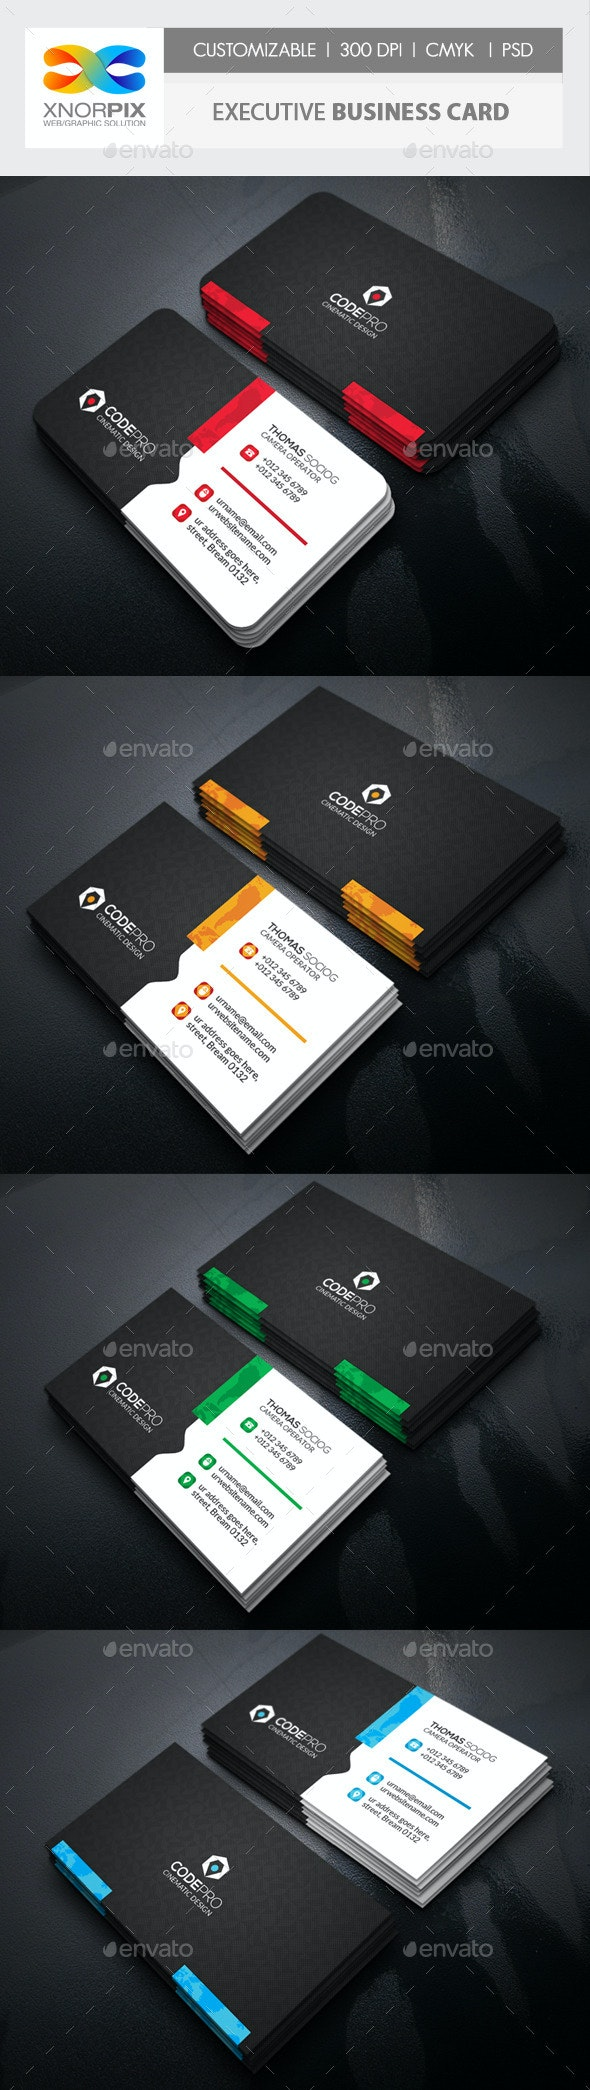 Motion Business Card - Corporate Business Cards